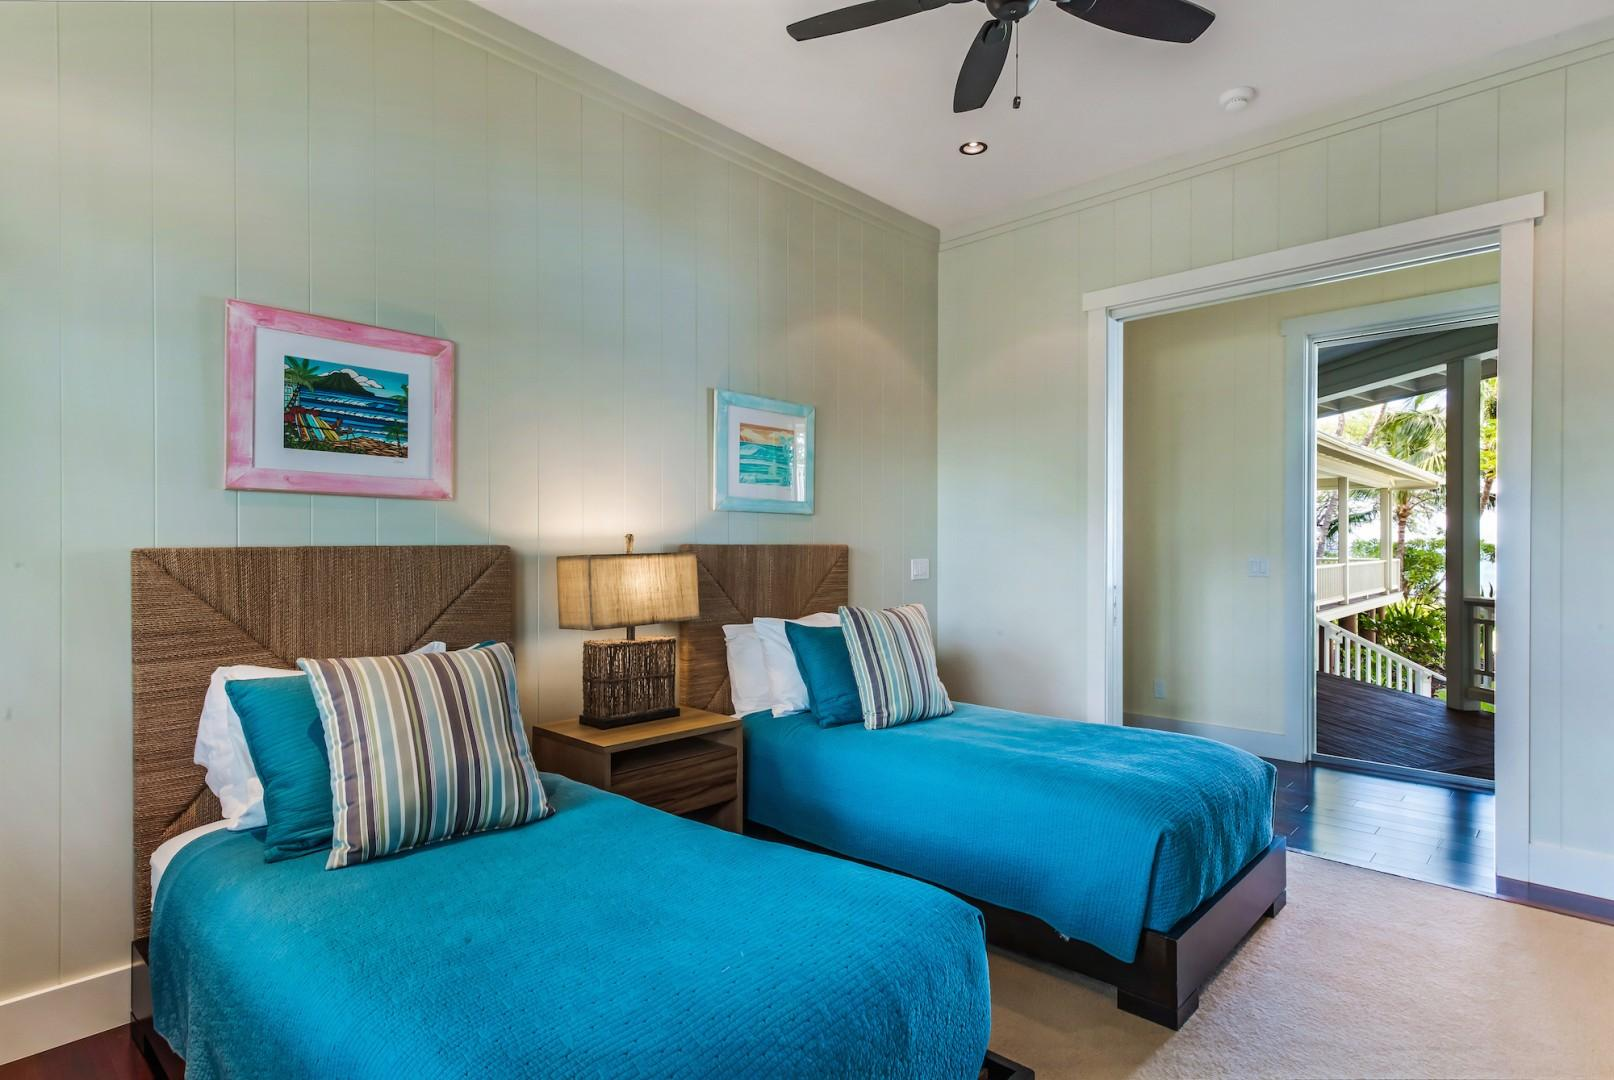 Bedroom 3 w/ Two Twin Beds and Ocean View from Double Pocket Doors to Hallway.